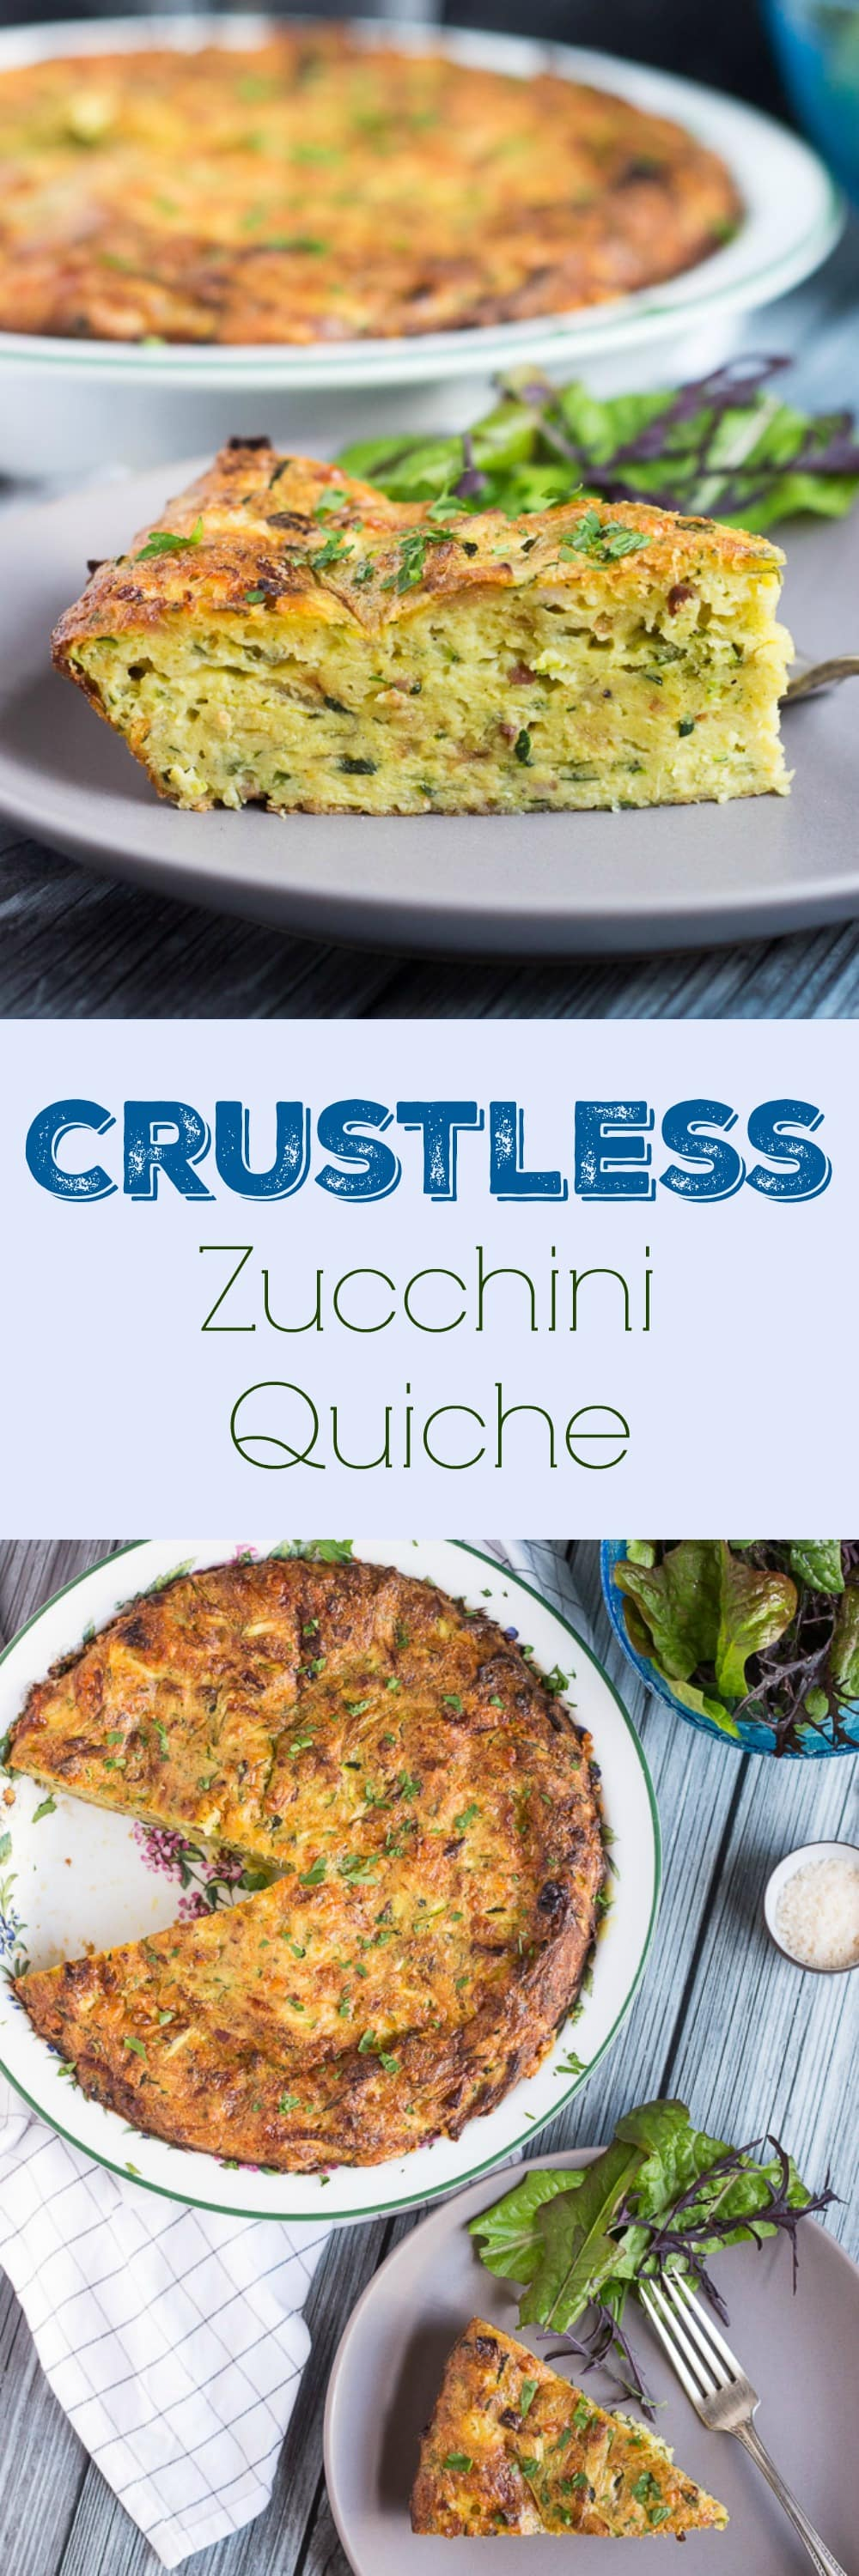 Crustless Zucchini Quiche. Quick to make, & a good way to use up an abundant zucchini crop. Great served hot or cold.